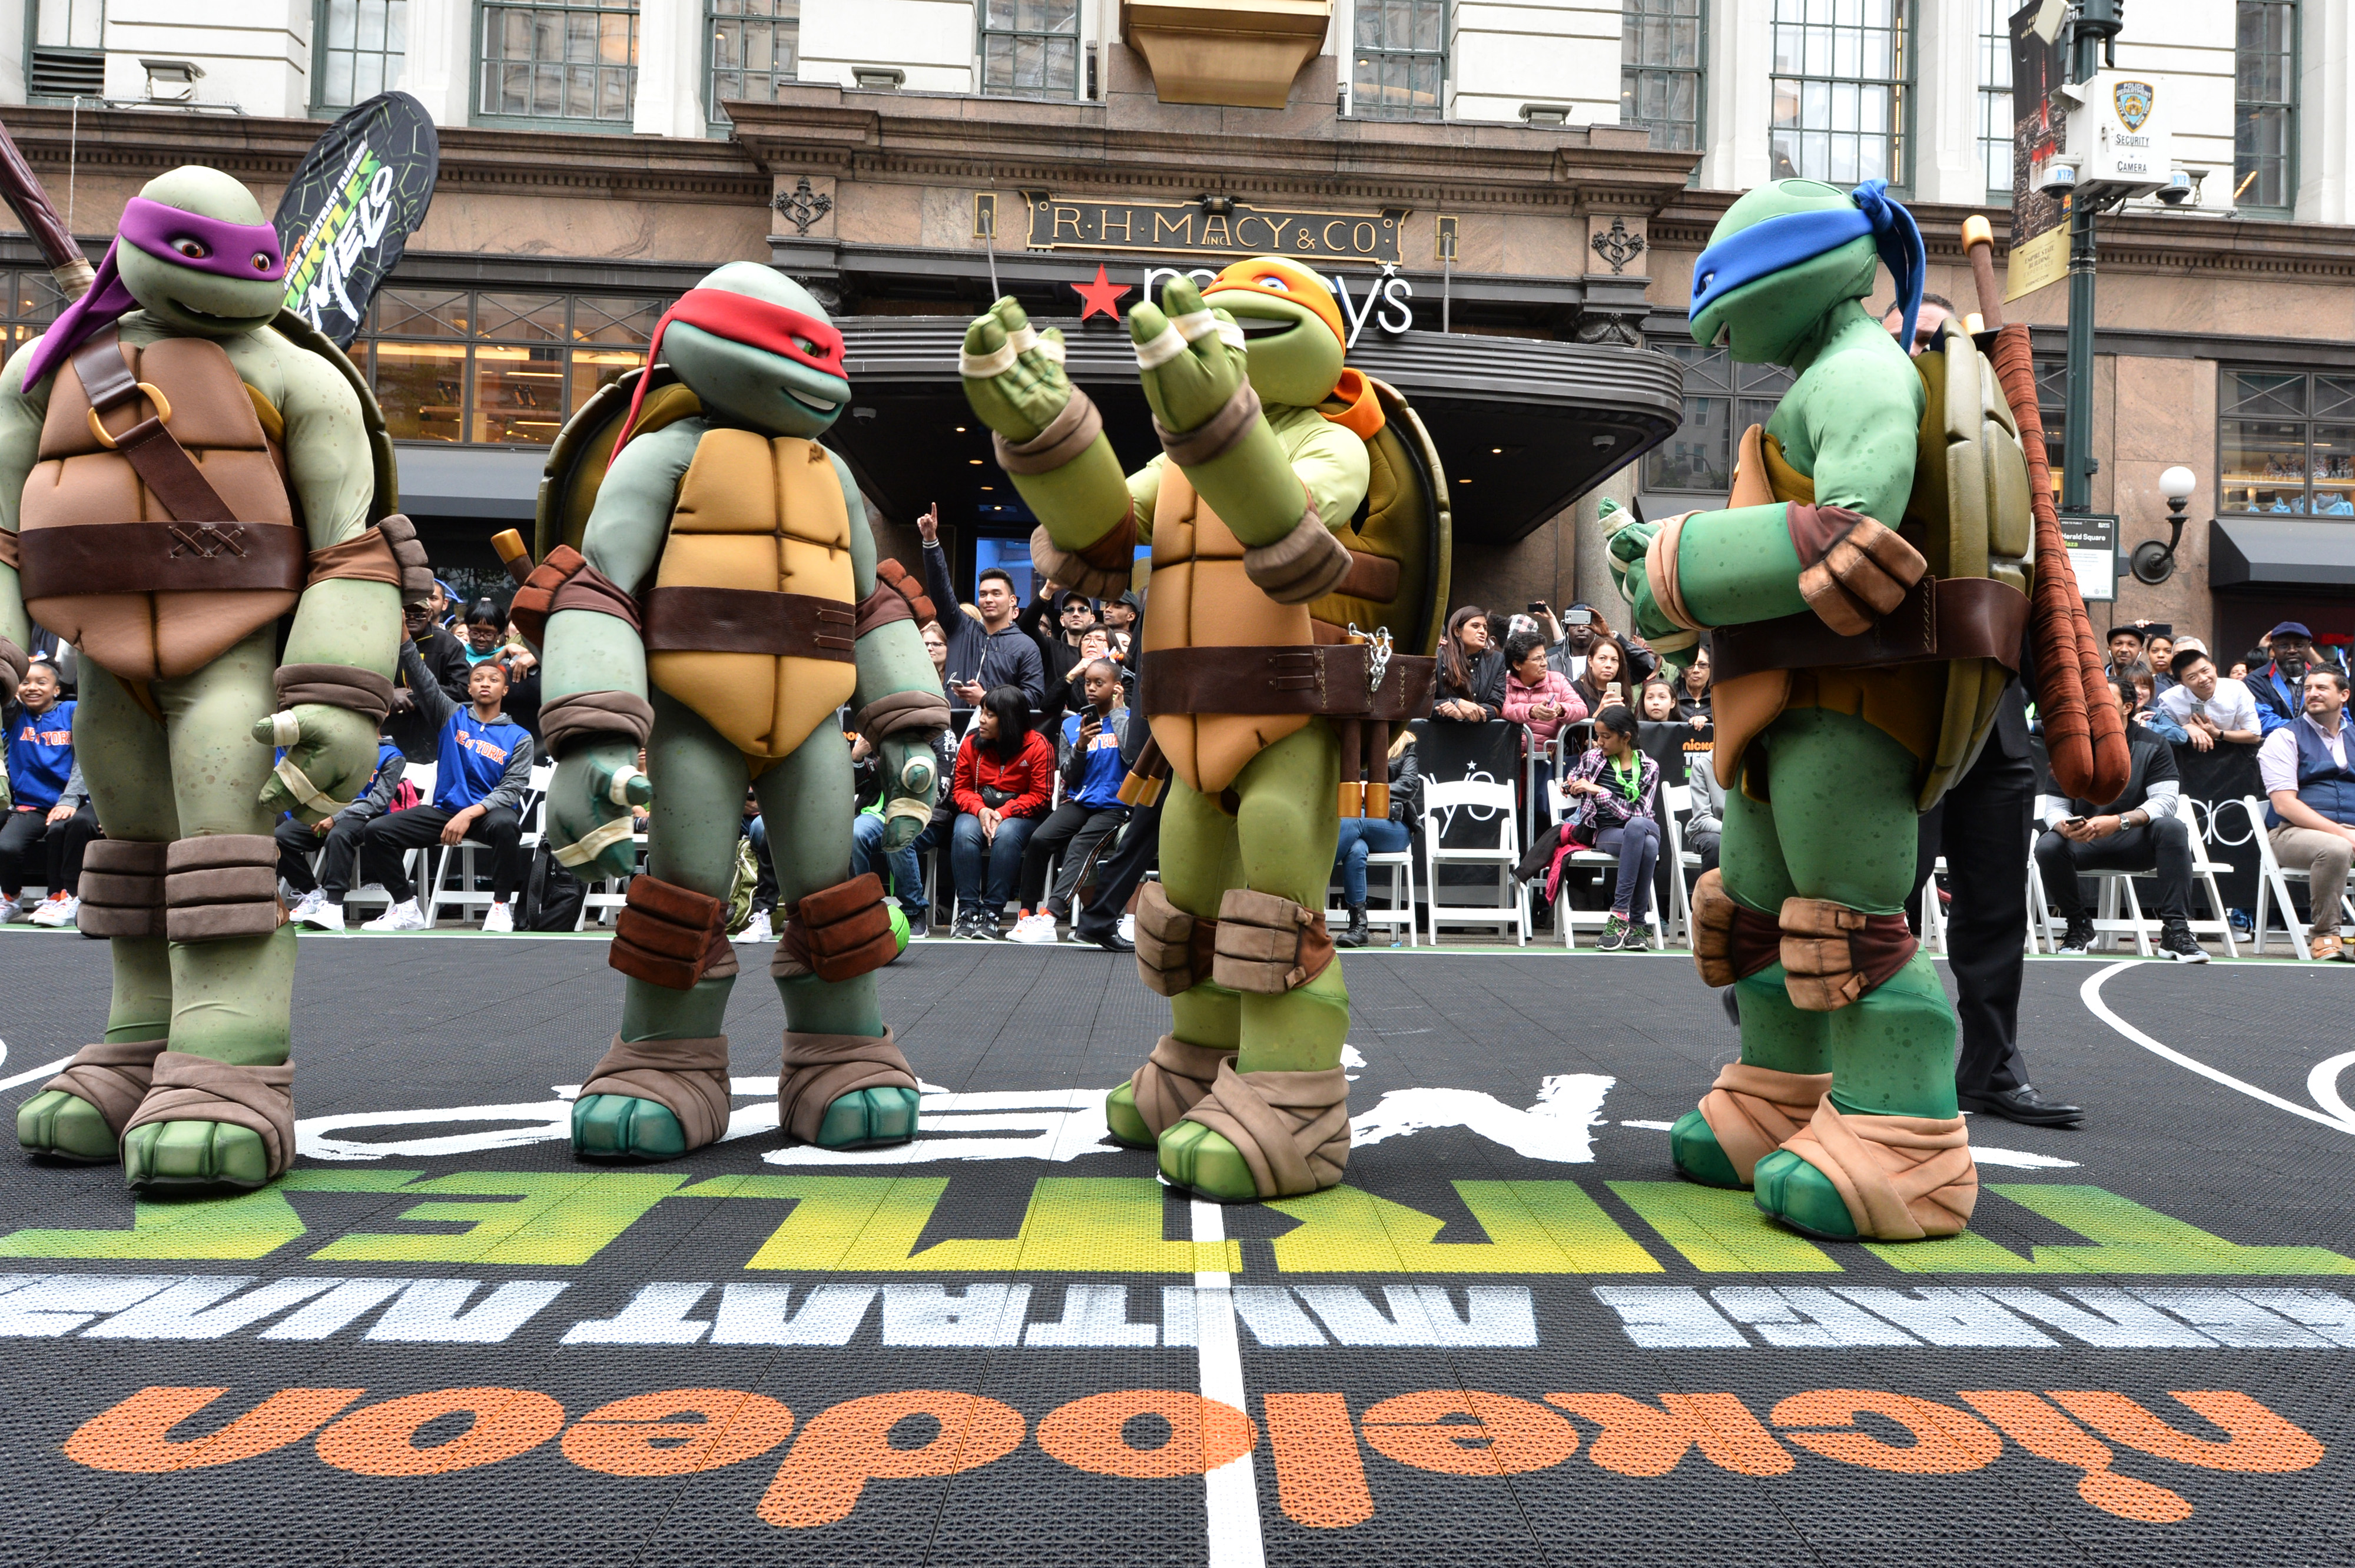 Macy's Welcomes Carmelo Anthony To Herald Square For The Launch Of TMNT X Melo